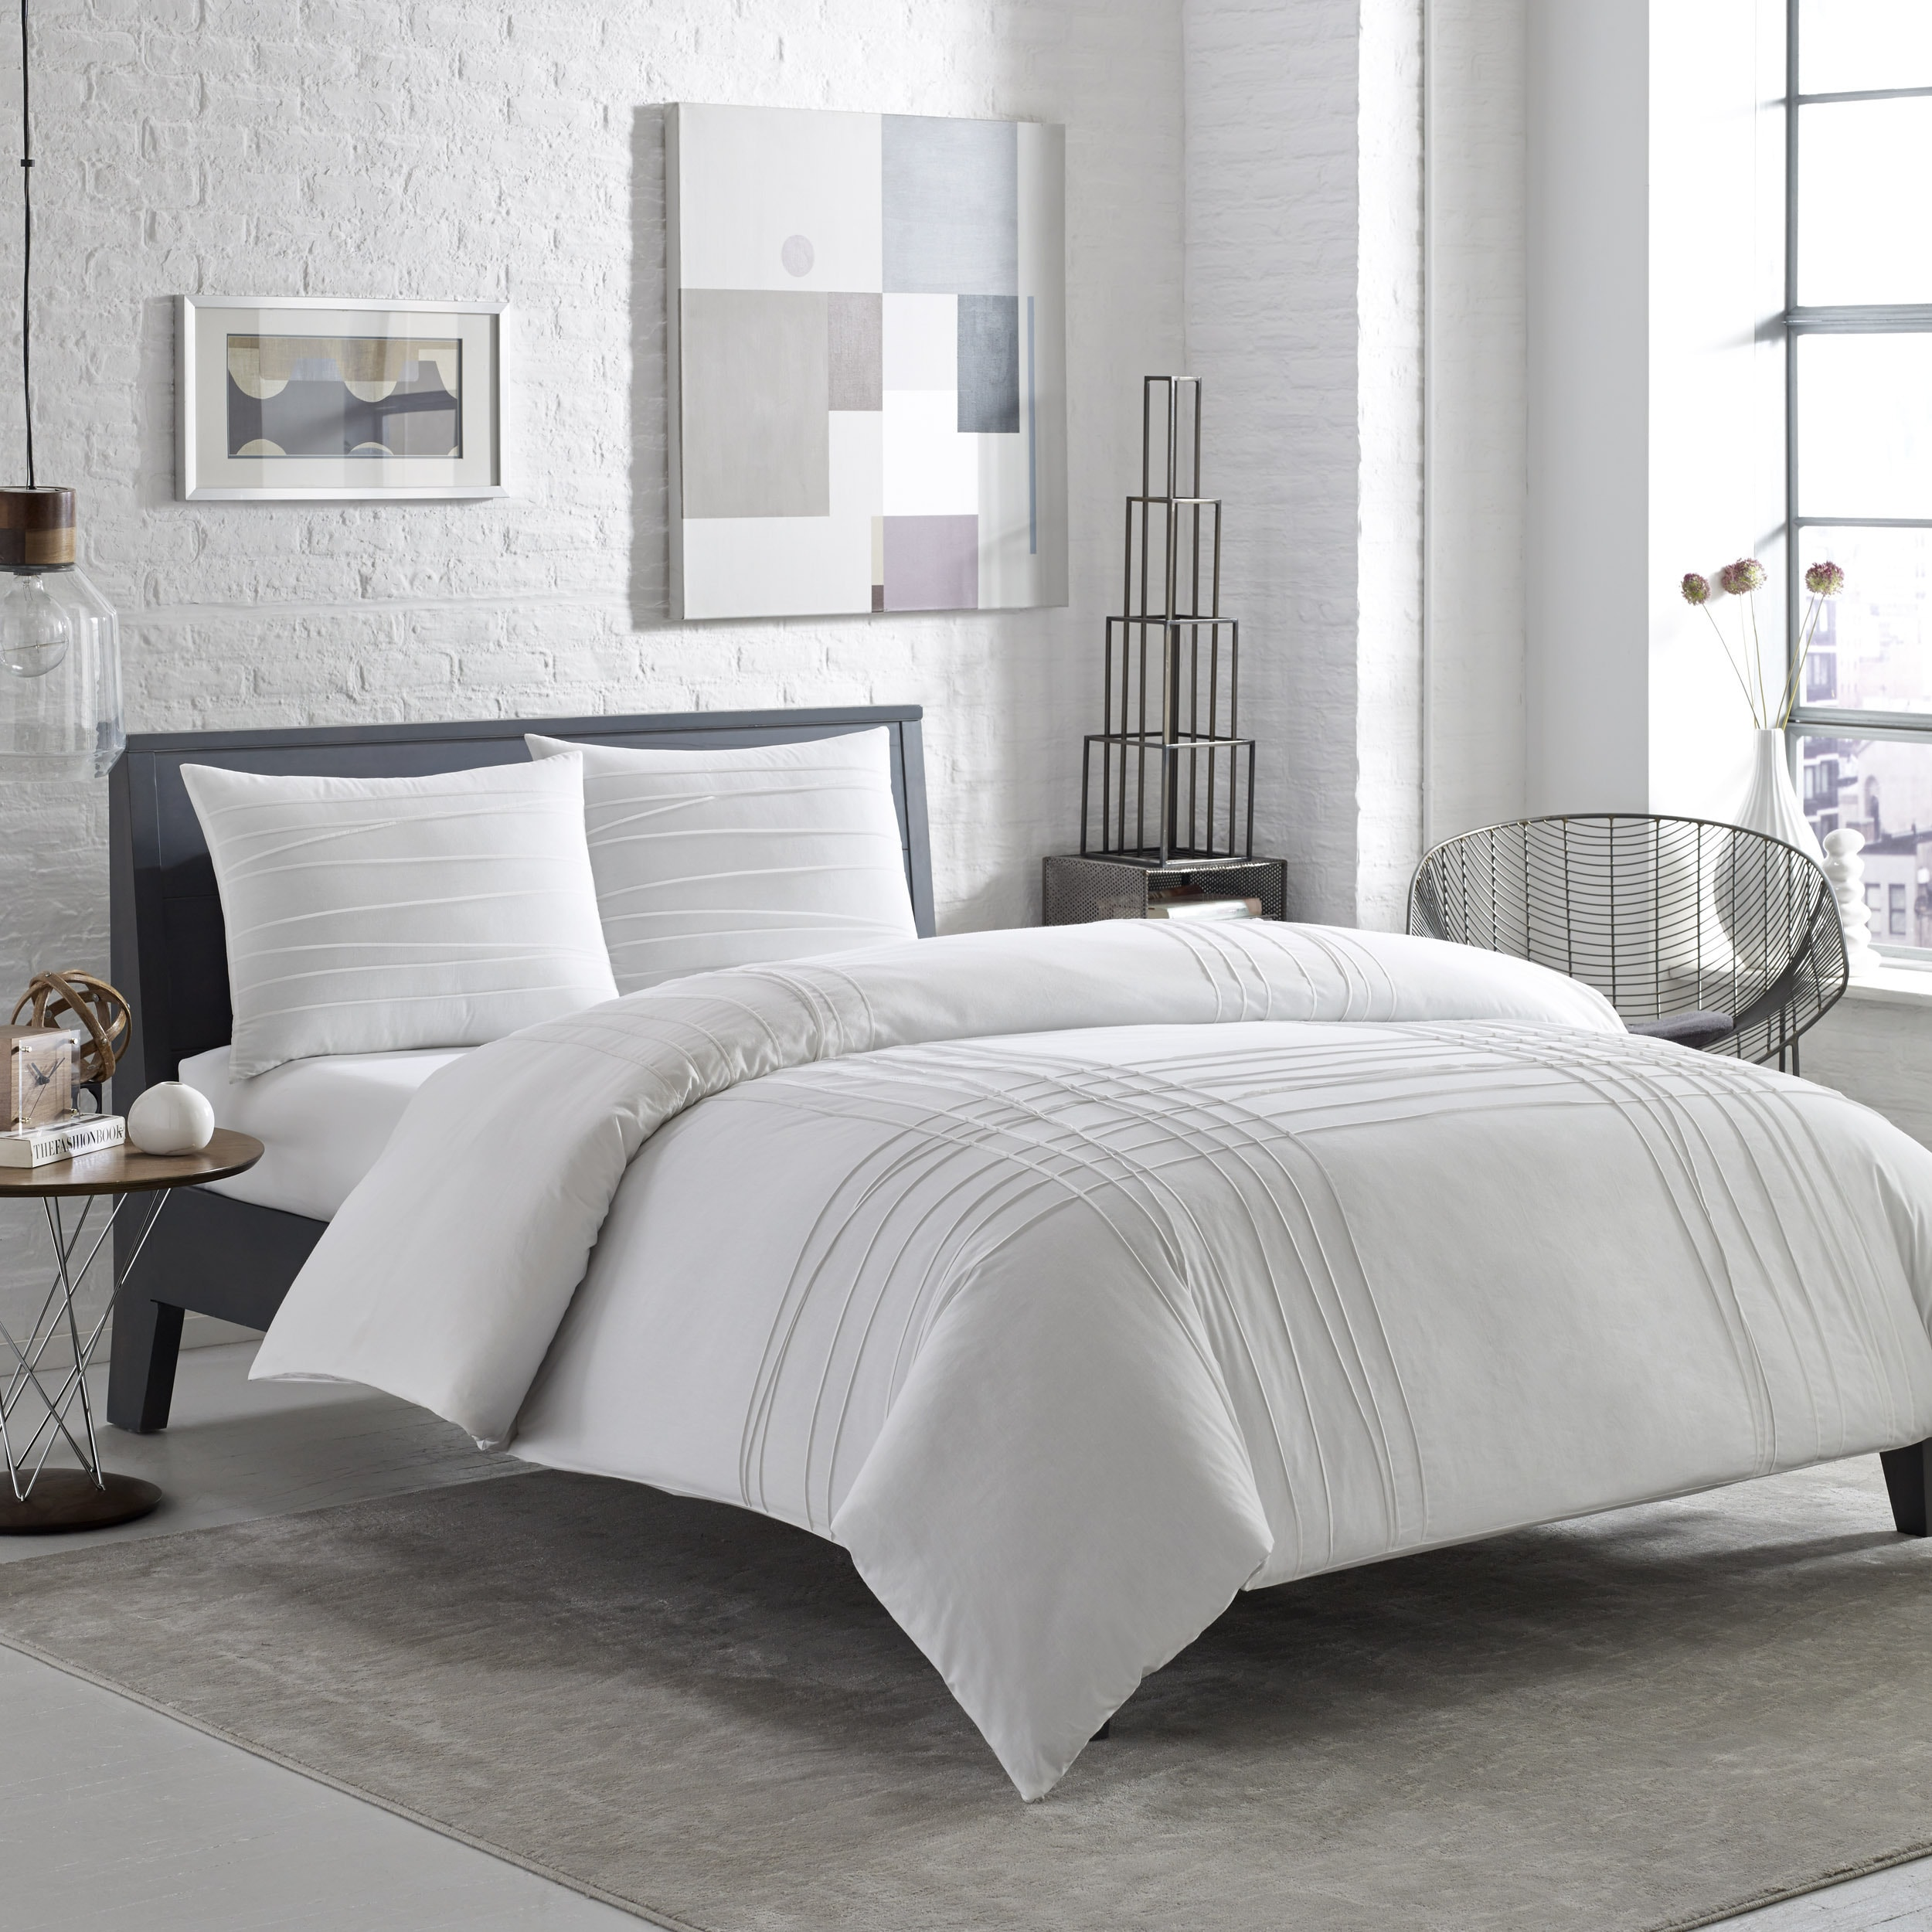 free piece bedding shipping bath overstock com set comforter madison park bed on davy product spice